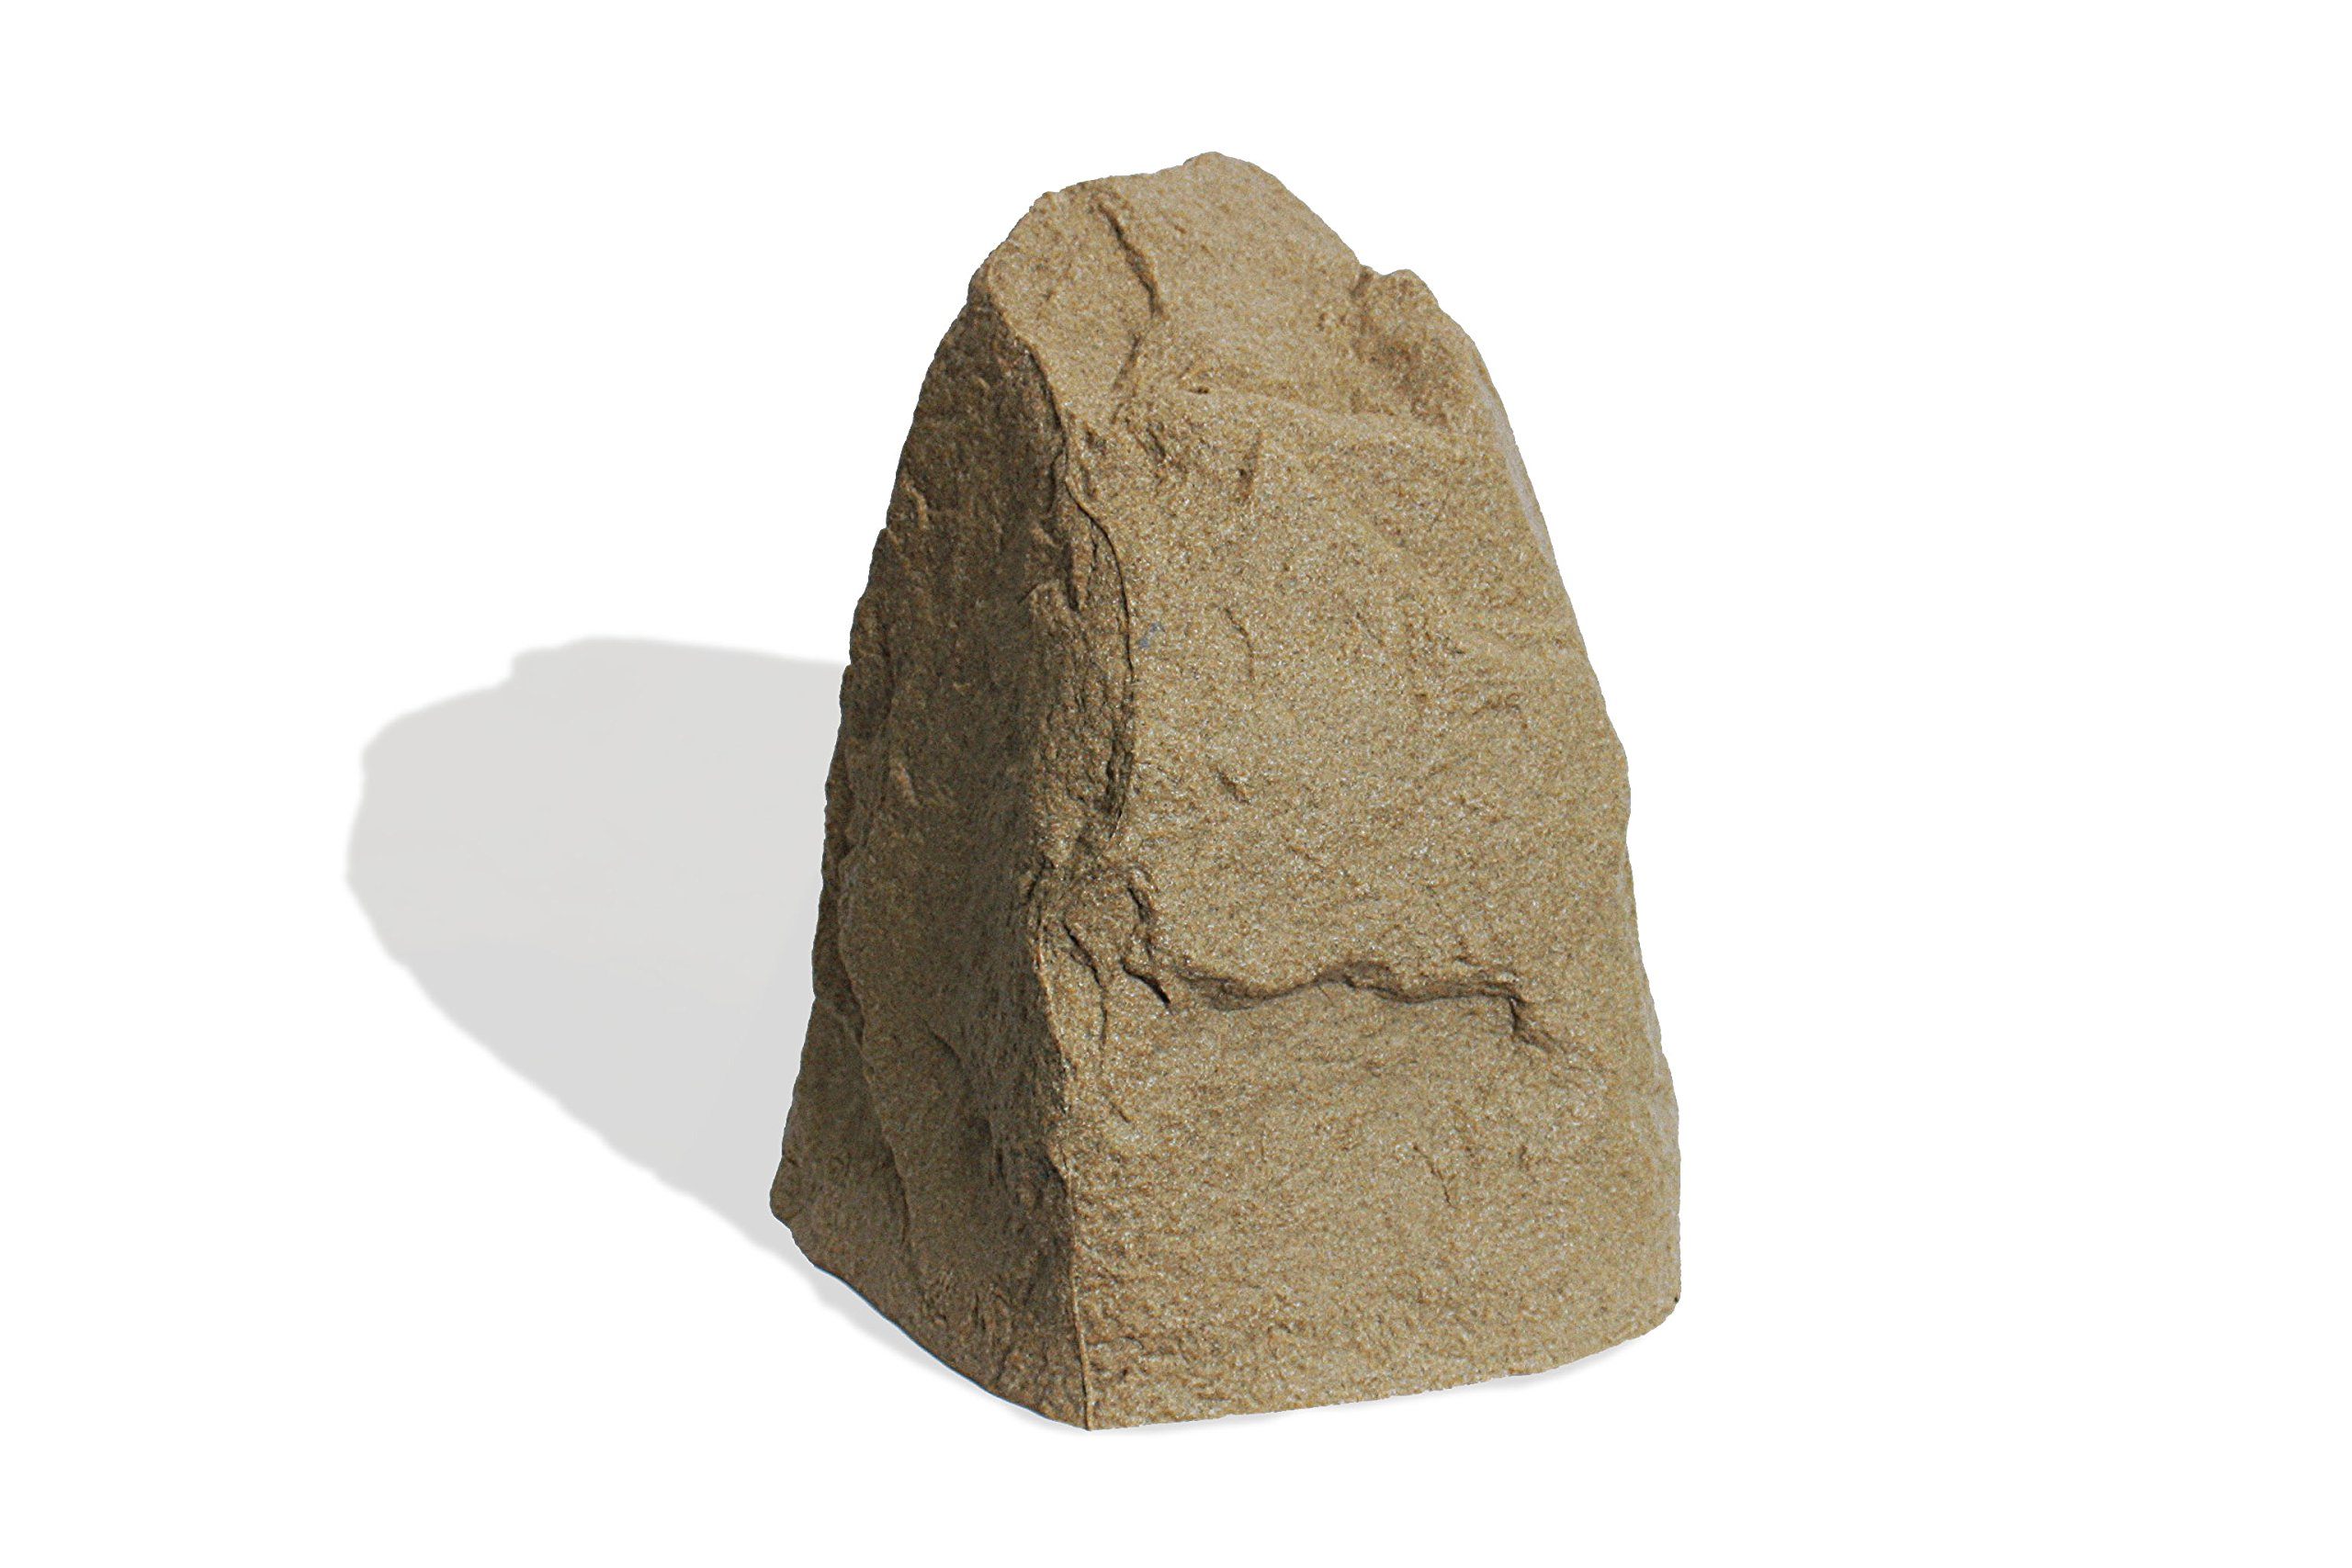 Algreen Products Receptacle Poly Rock Cover and Decorative Garden Accent, 21.5 x 18 x 16-Inch, Sandstone